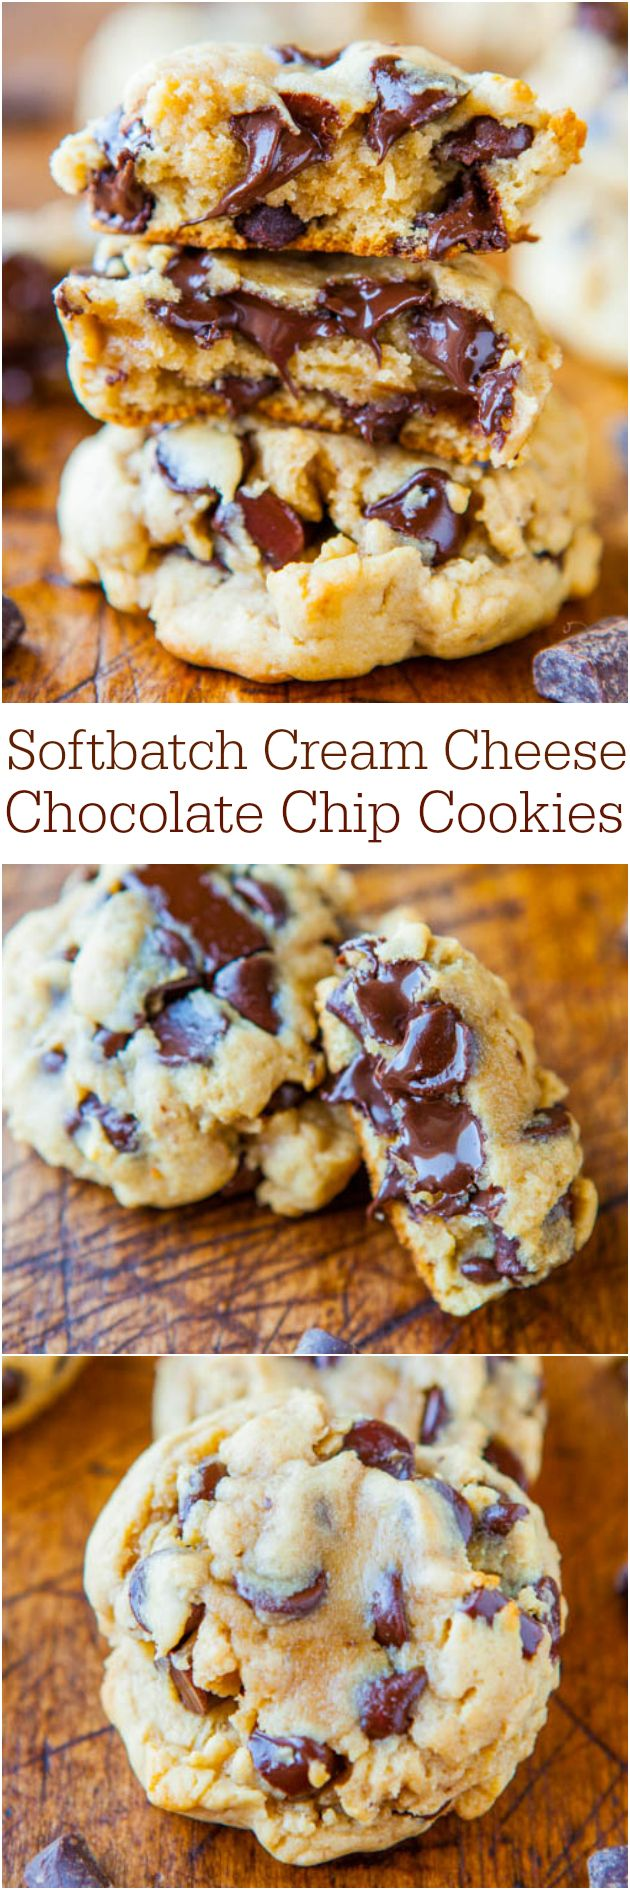 Softbatch Cream Cheese Chocolate Ch